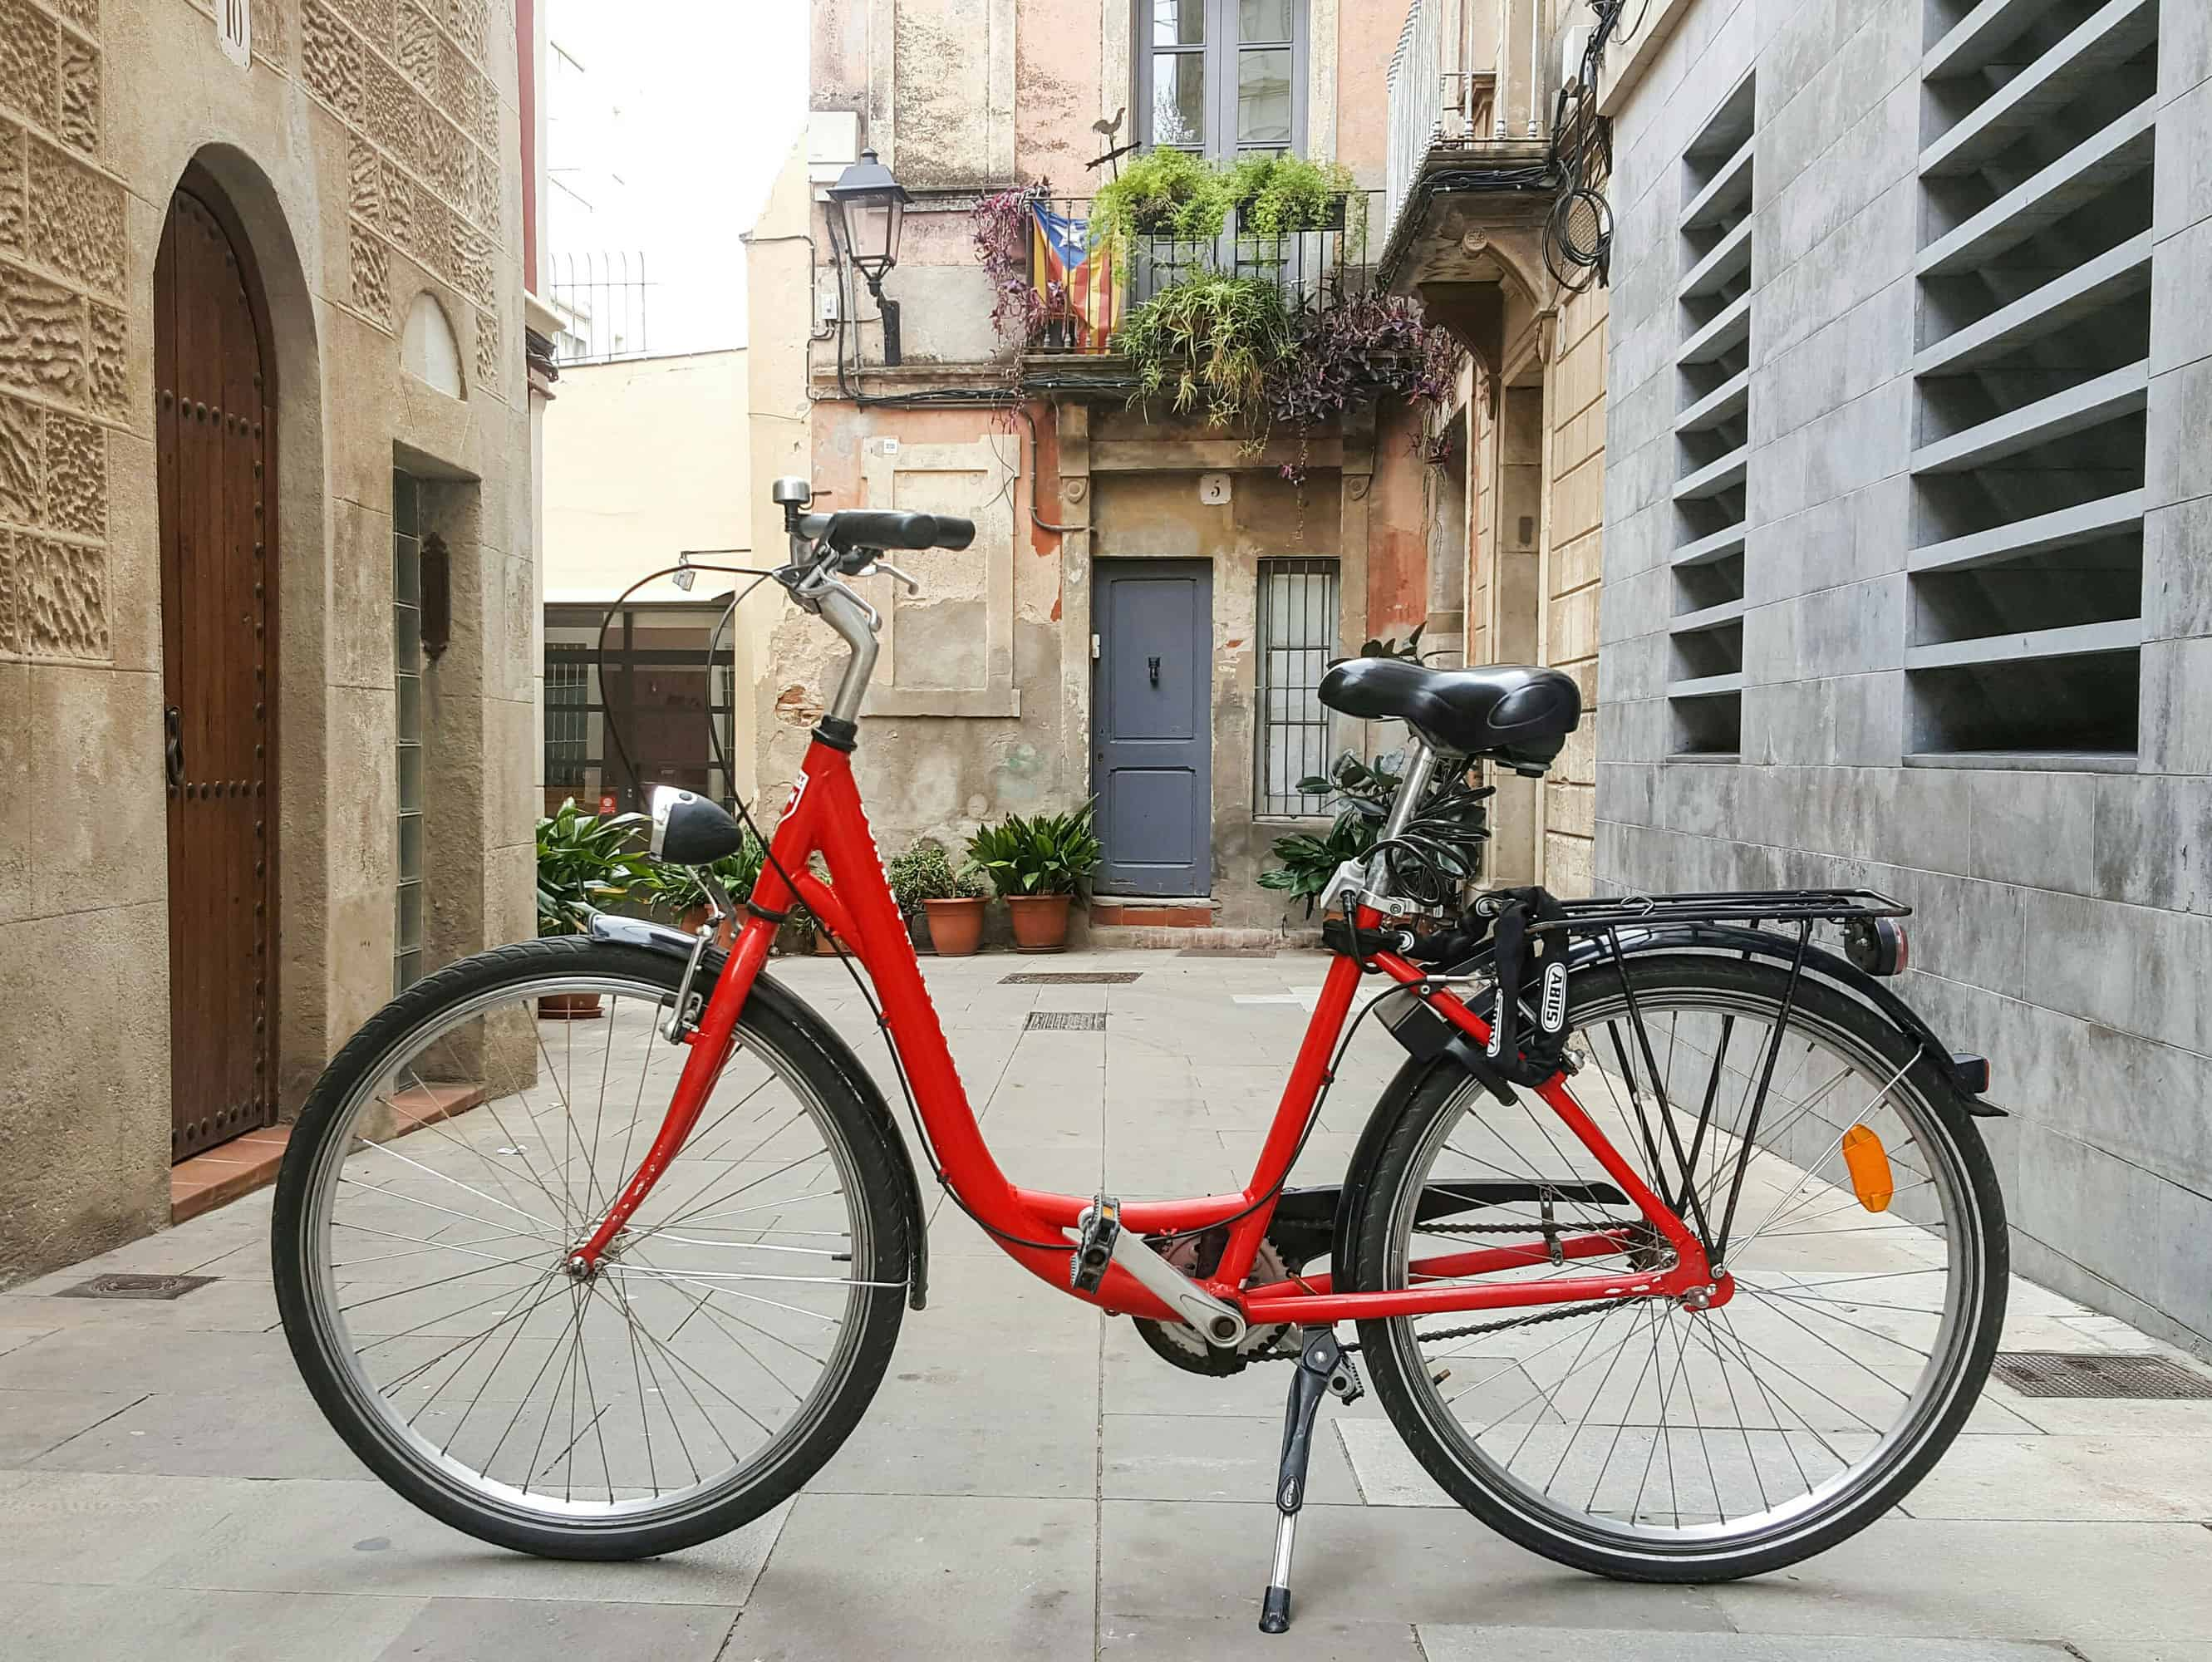 Barcelona barrios - A bike in a little street Sarria